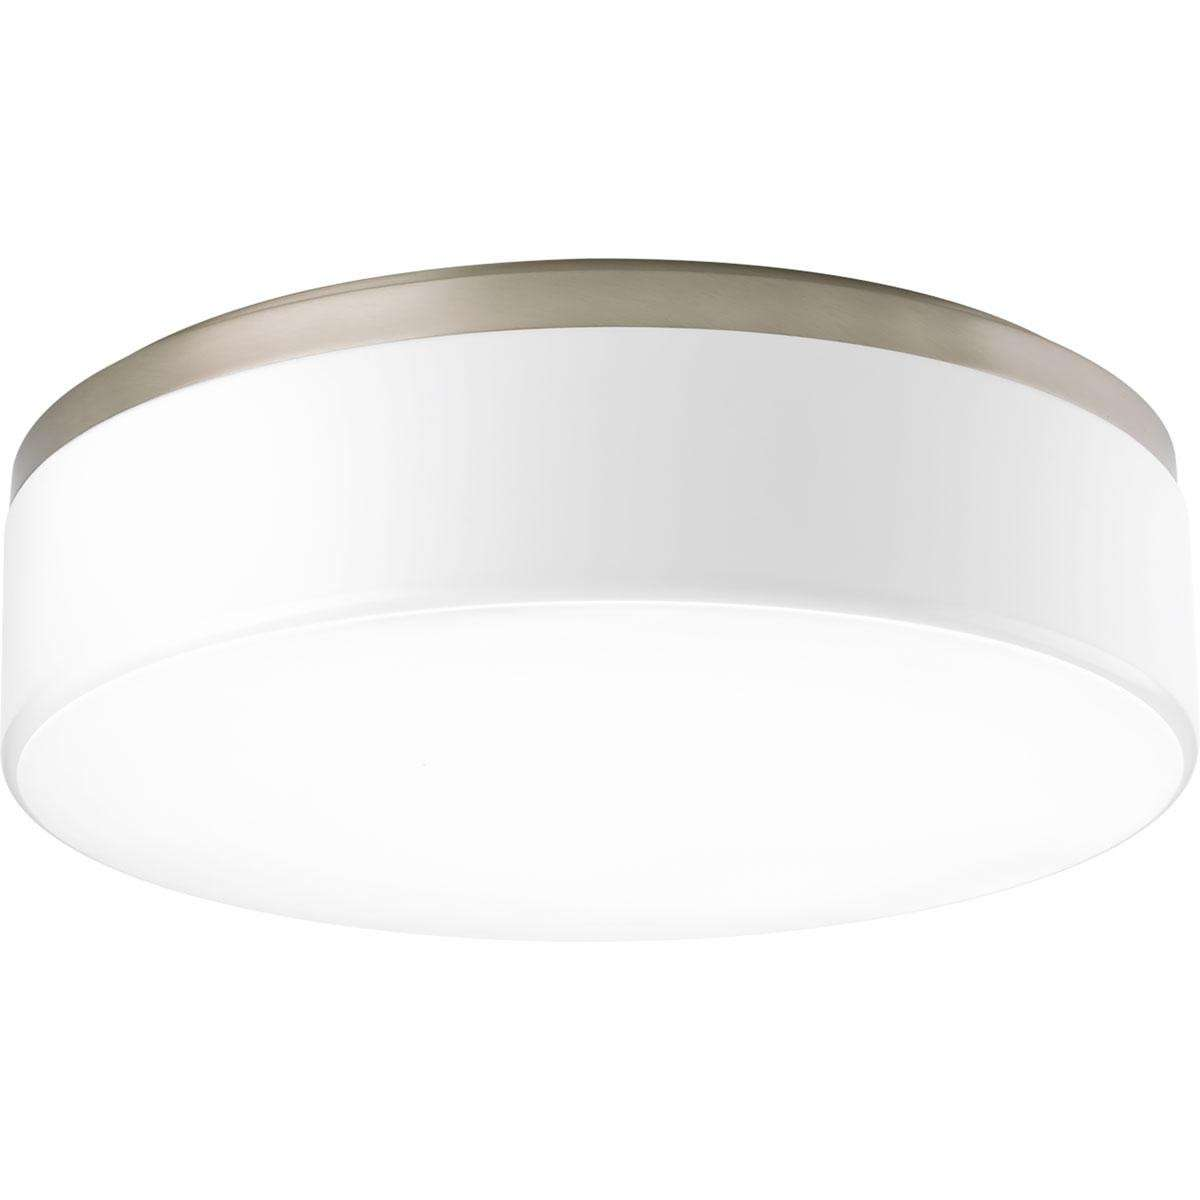 "Maier Brushed Nickel 3-Lt. LED Flush Mount w/AC LED Module (18"") White acrylic diffuser"